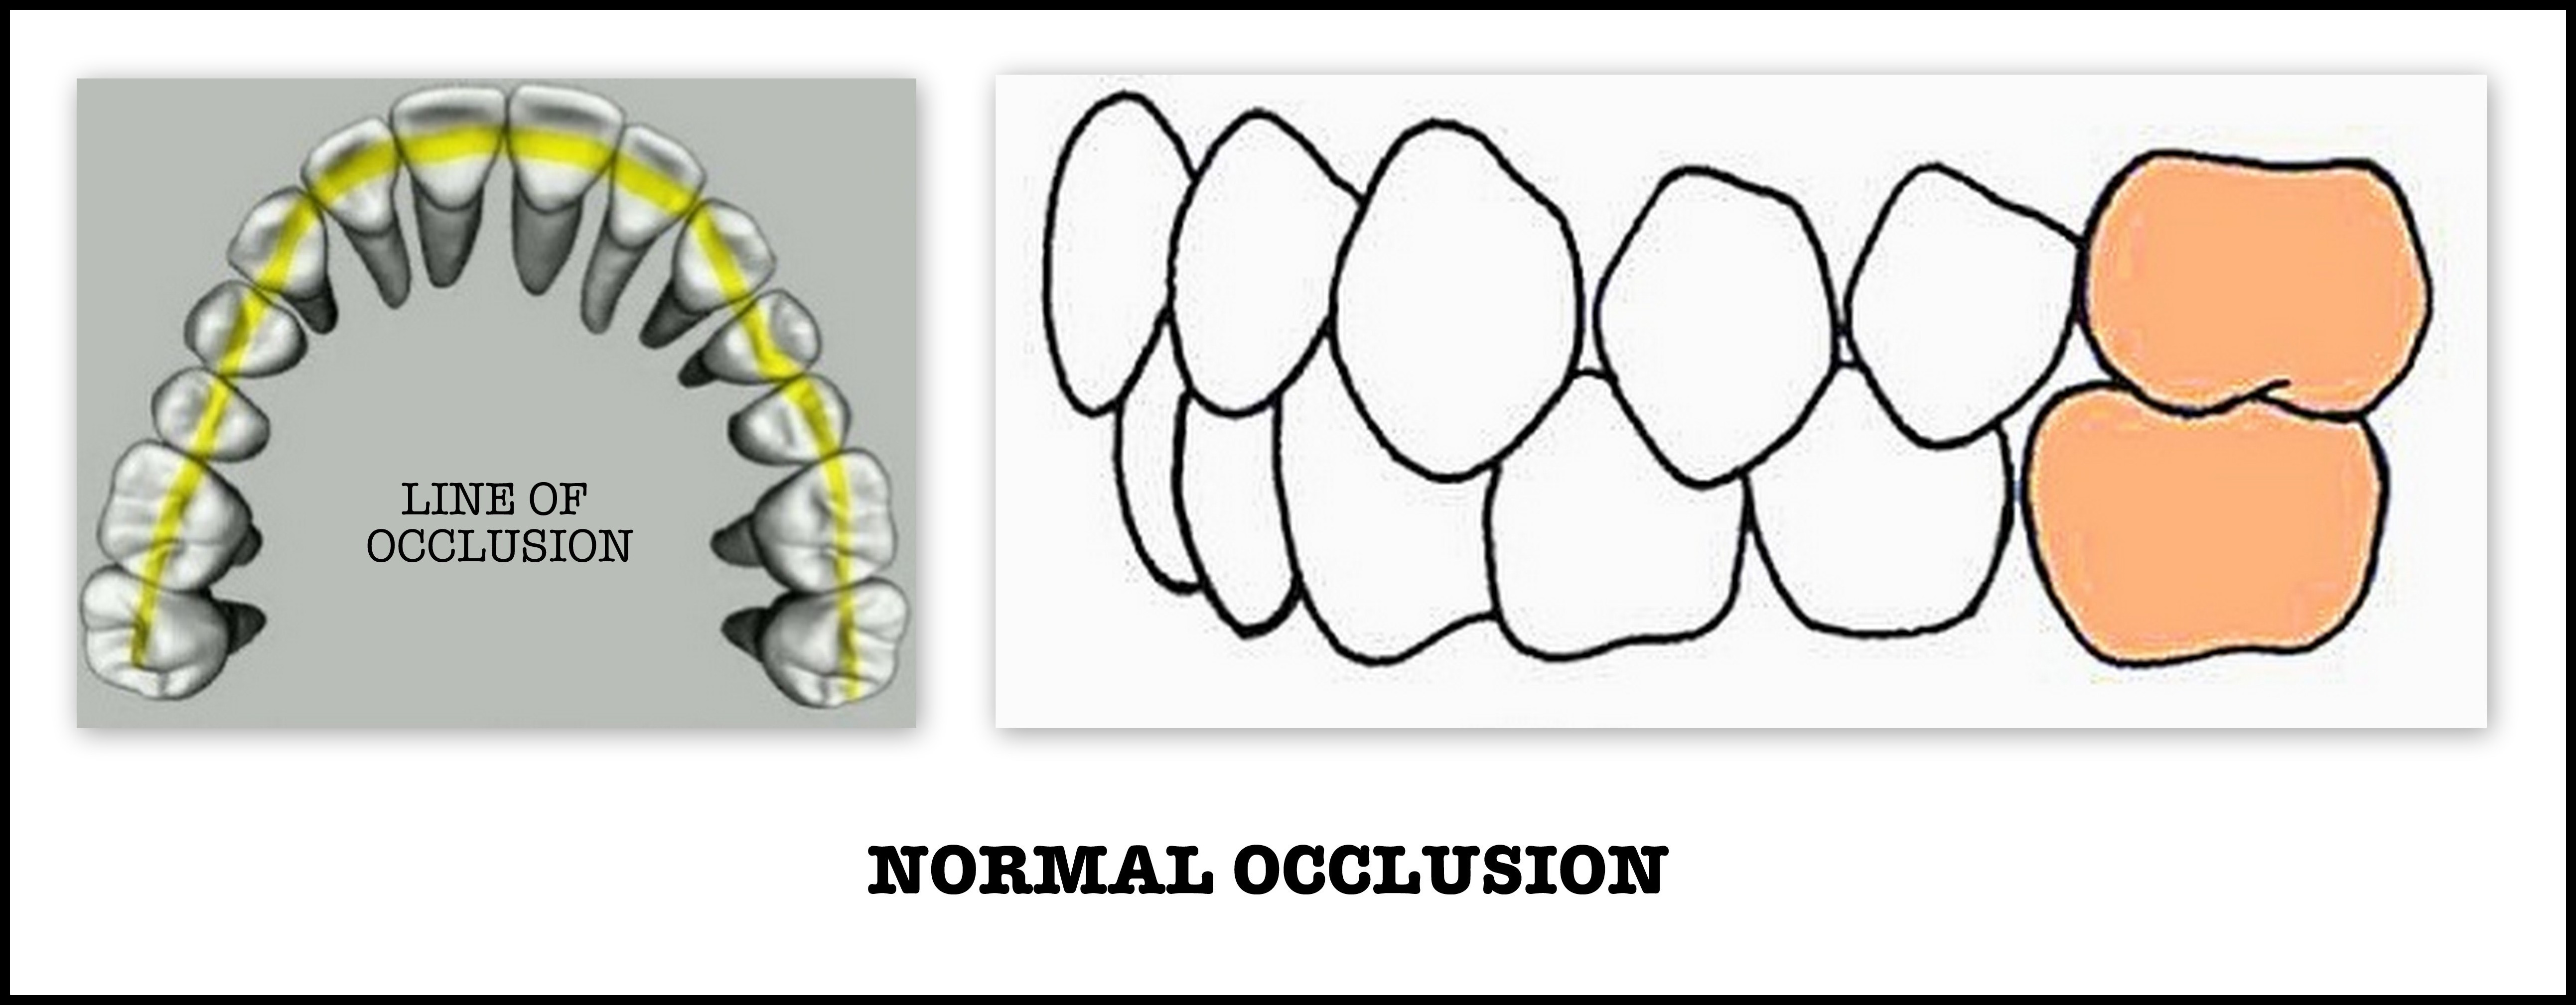 ANGLE'S CLASSIFICATION OF MALOCCLUSION | DENTODONTICS